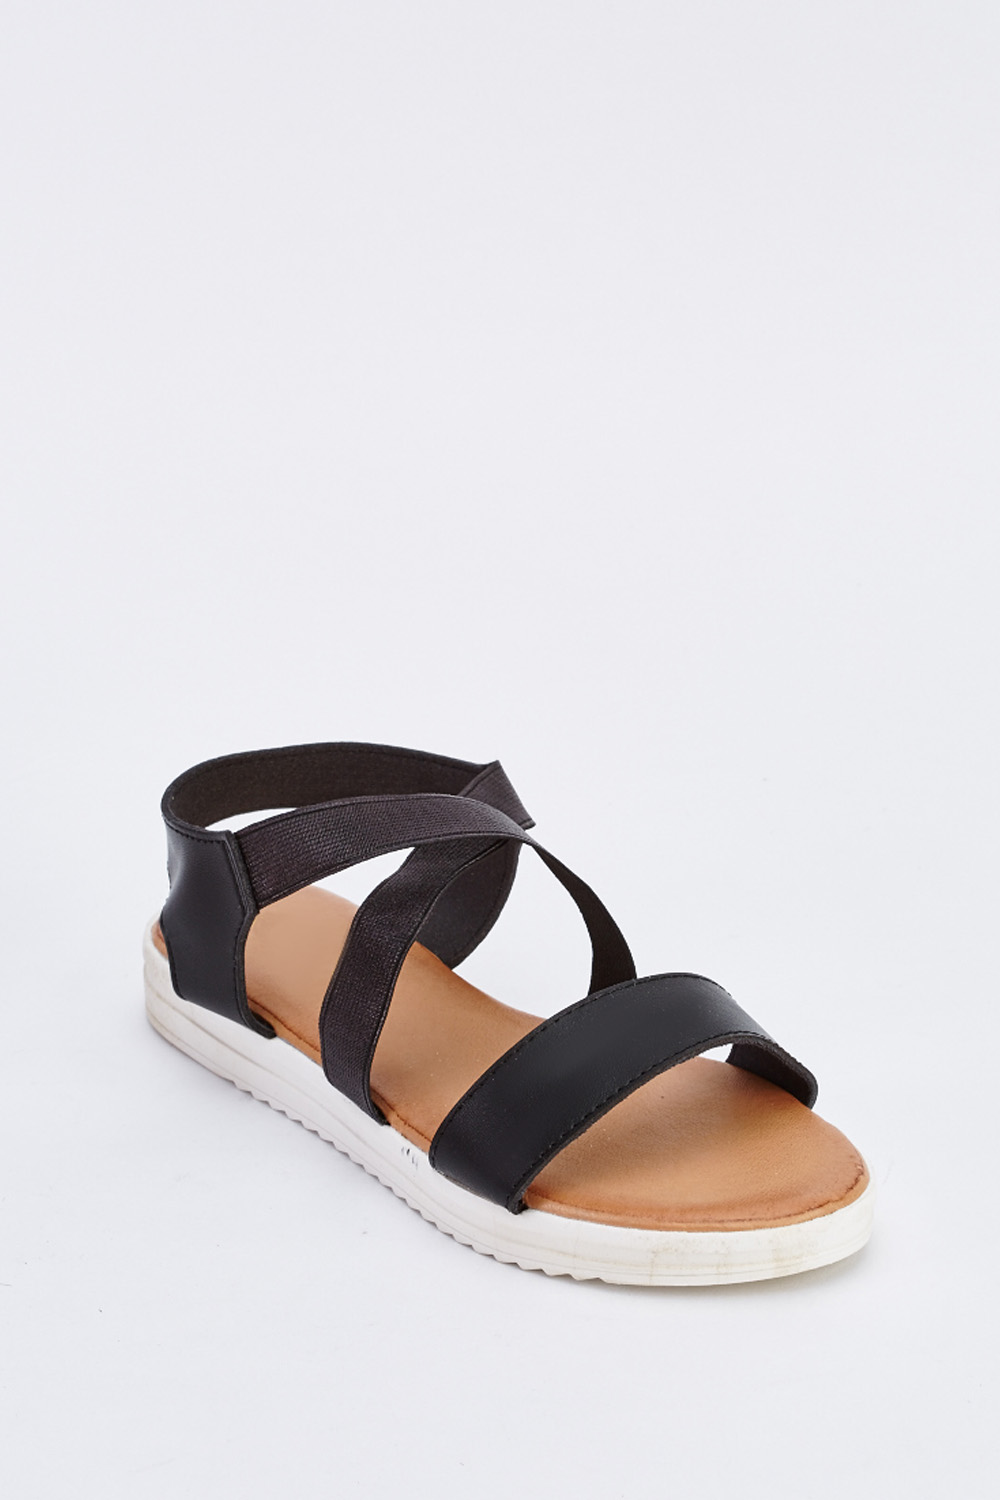 32c7dfbd2a34 Crossover Strap Flat Sandals - Just £5